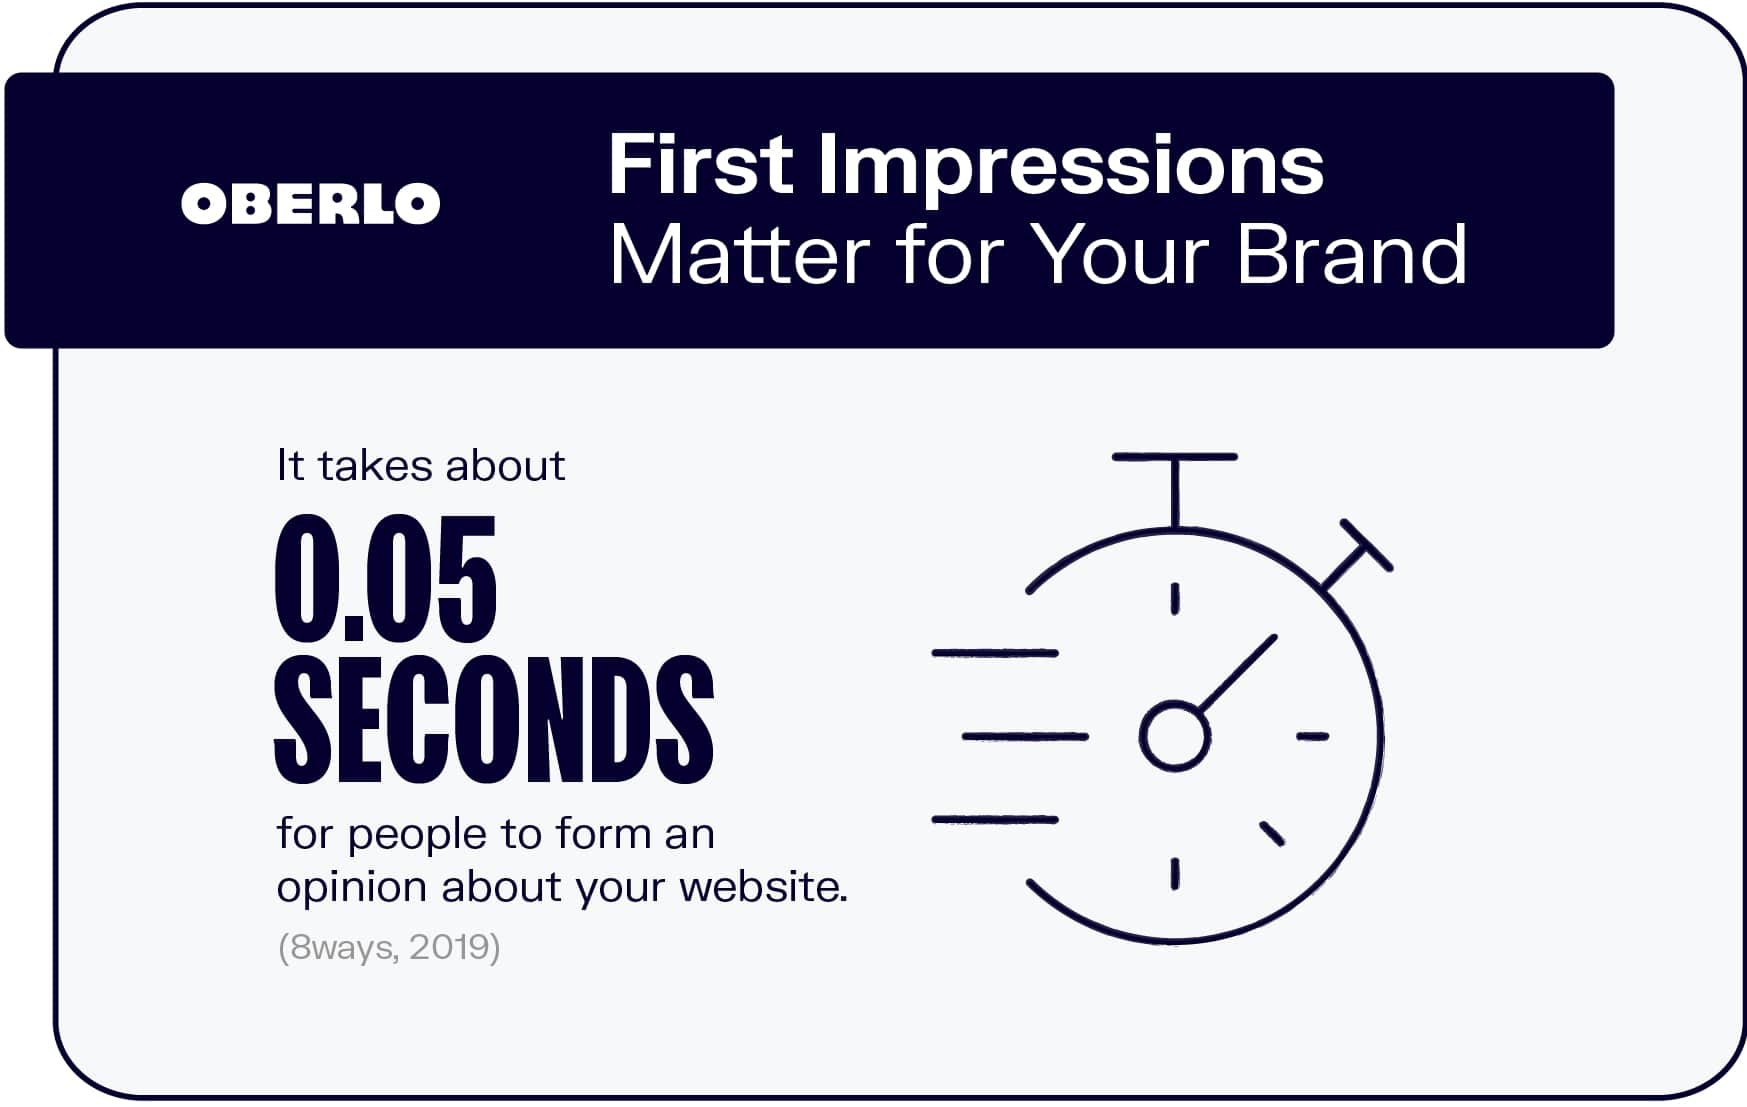 First Impressions Matter for Your Brand